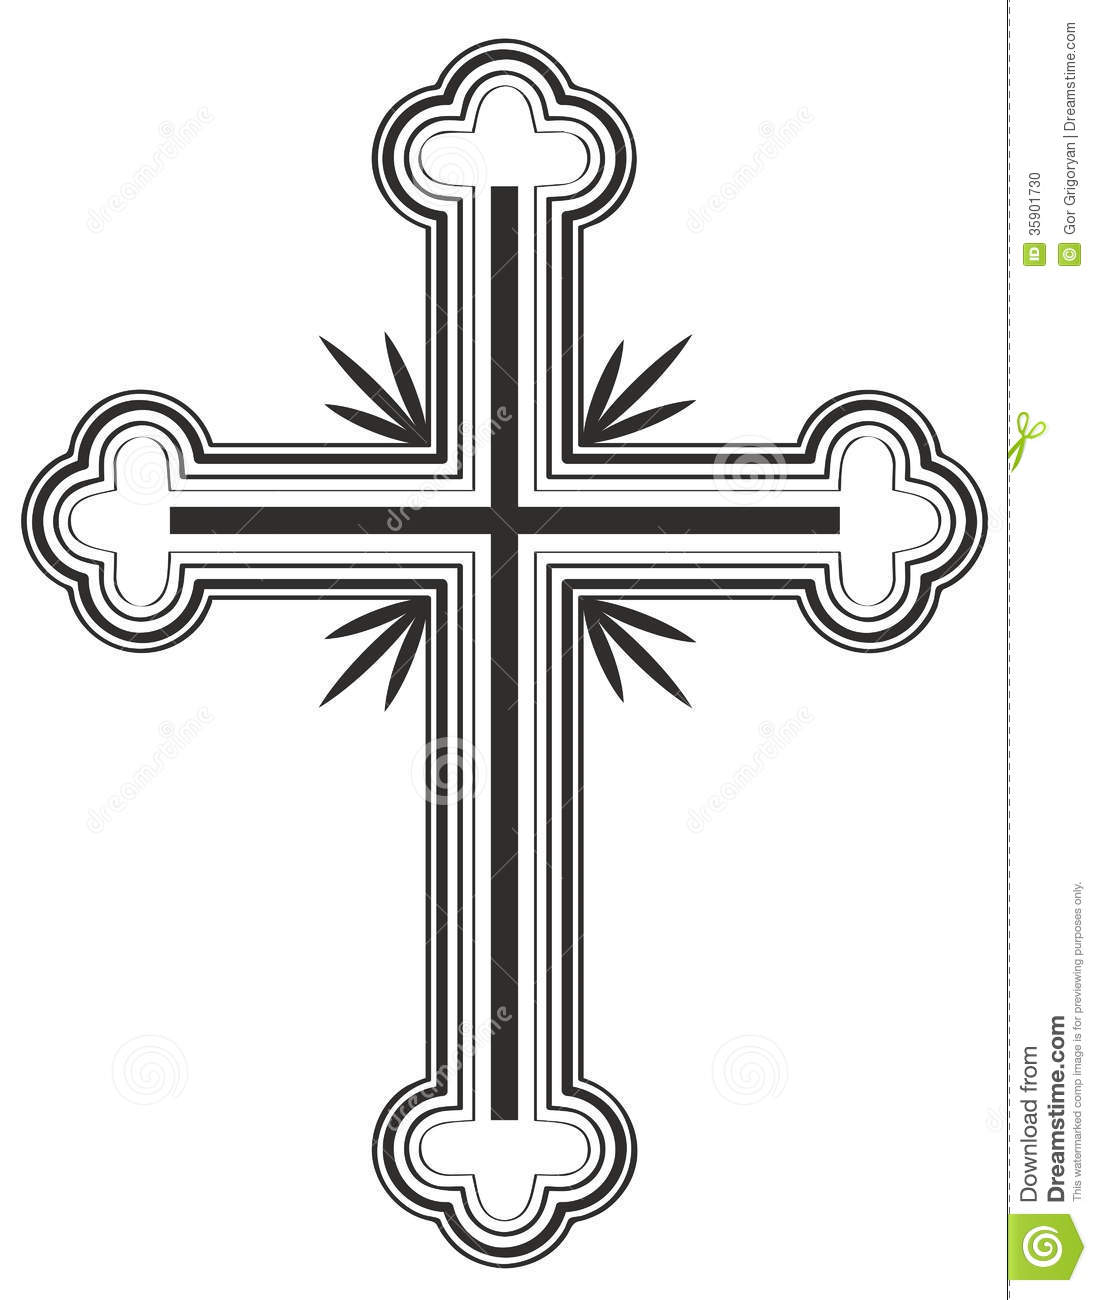 Catholic Cross Clipart Free Download Clip Art.